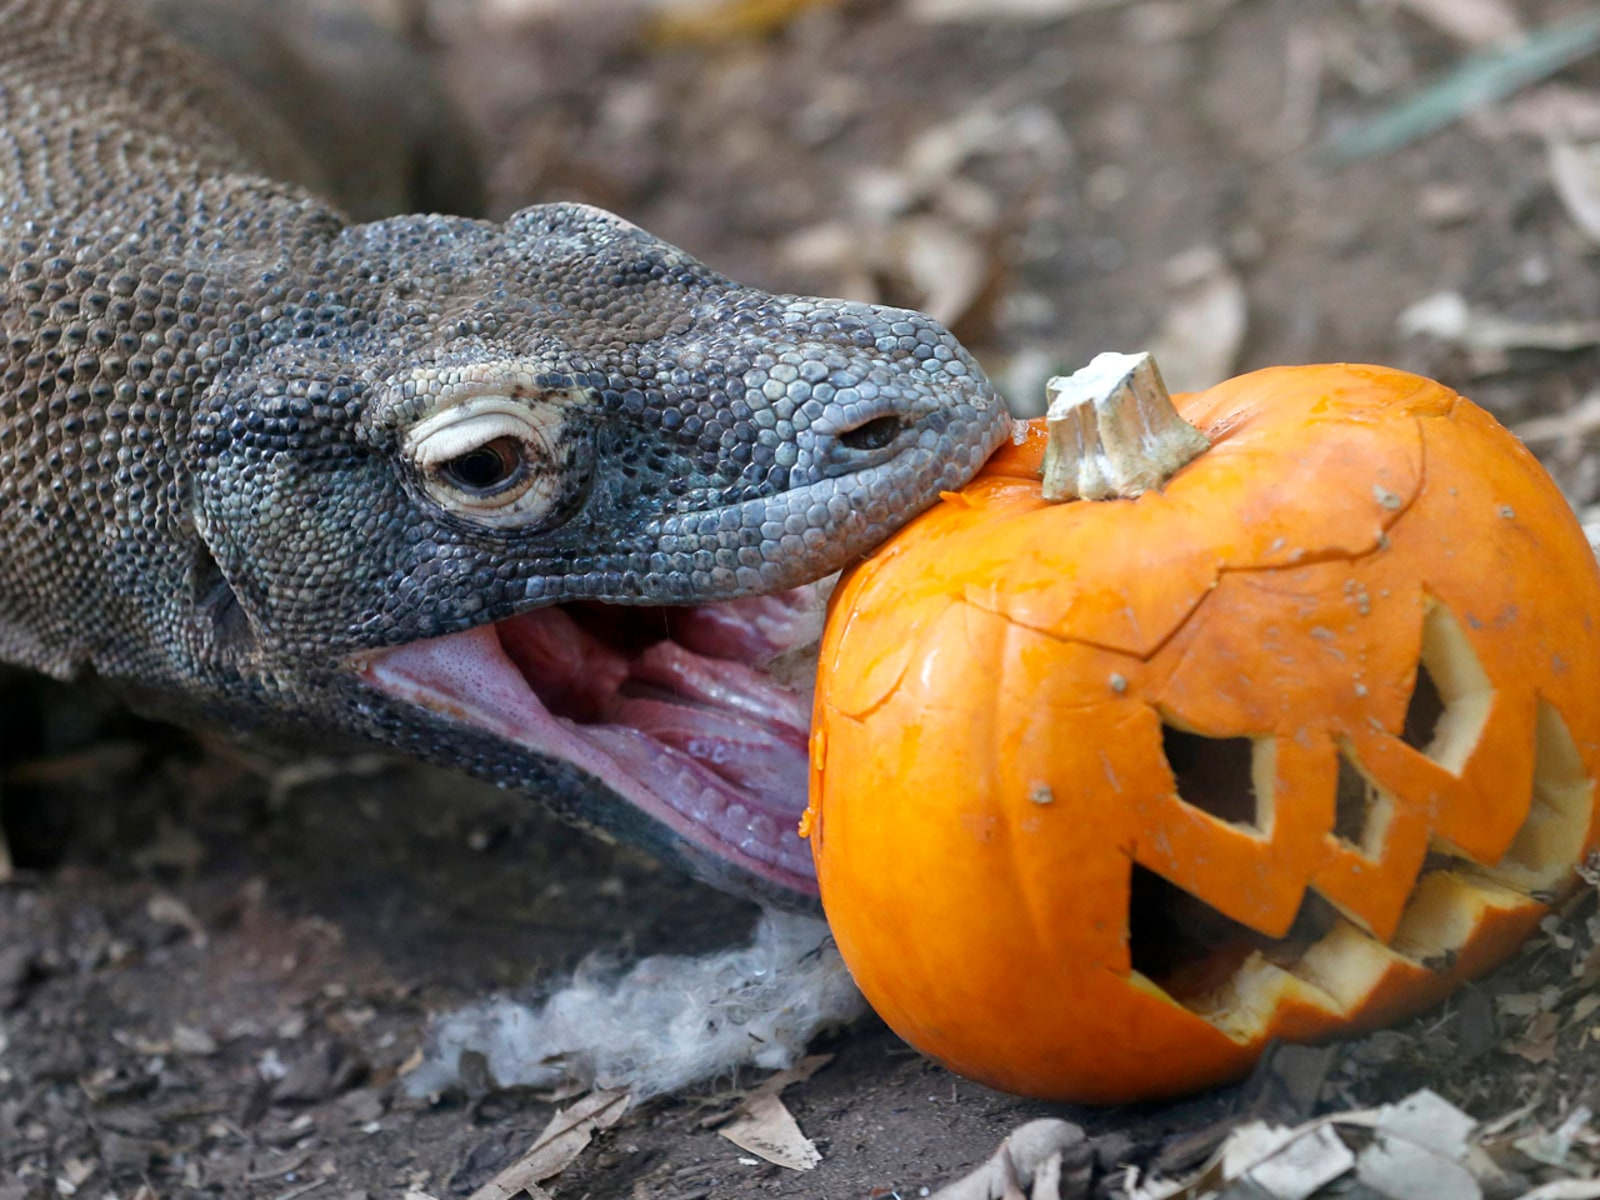 Image: Raja, a Komodo Dragon, bites a carved pumpkin during a Halloween-themed media event at the London Zoo